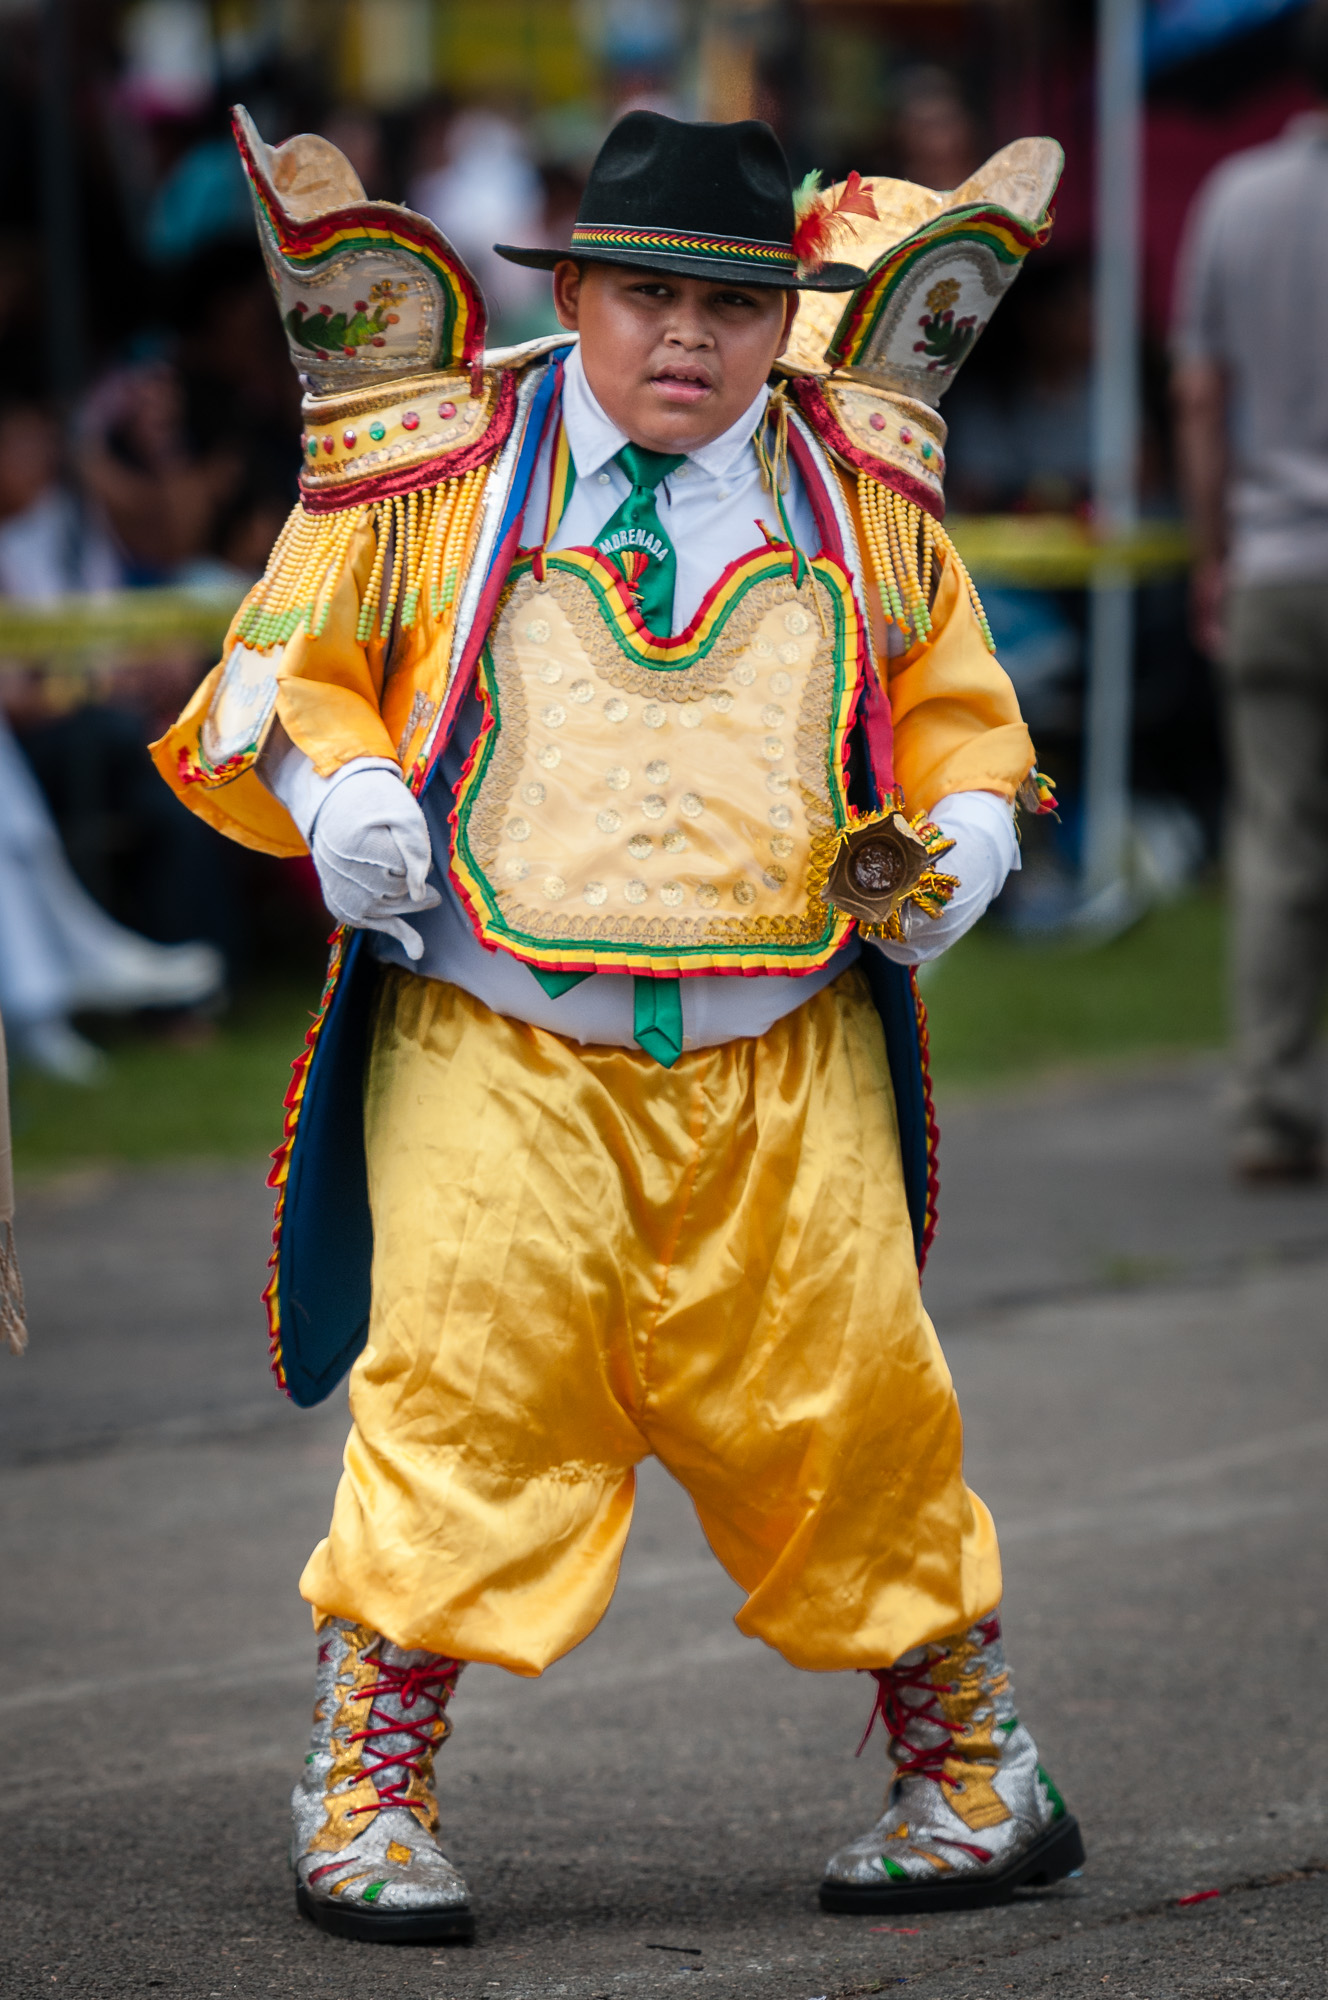 A young member of Morenada Bolivia USA performs his moves during a Morenada dance.